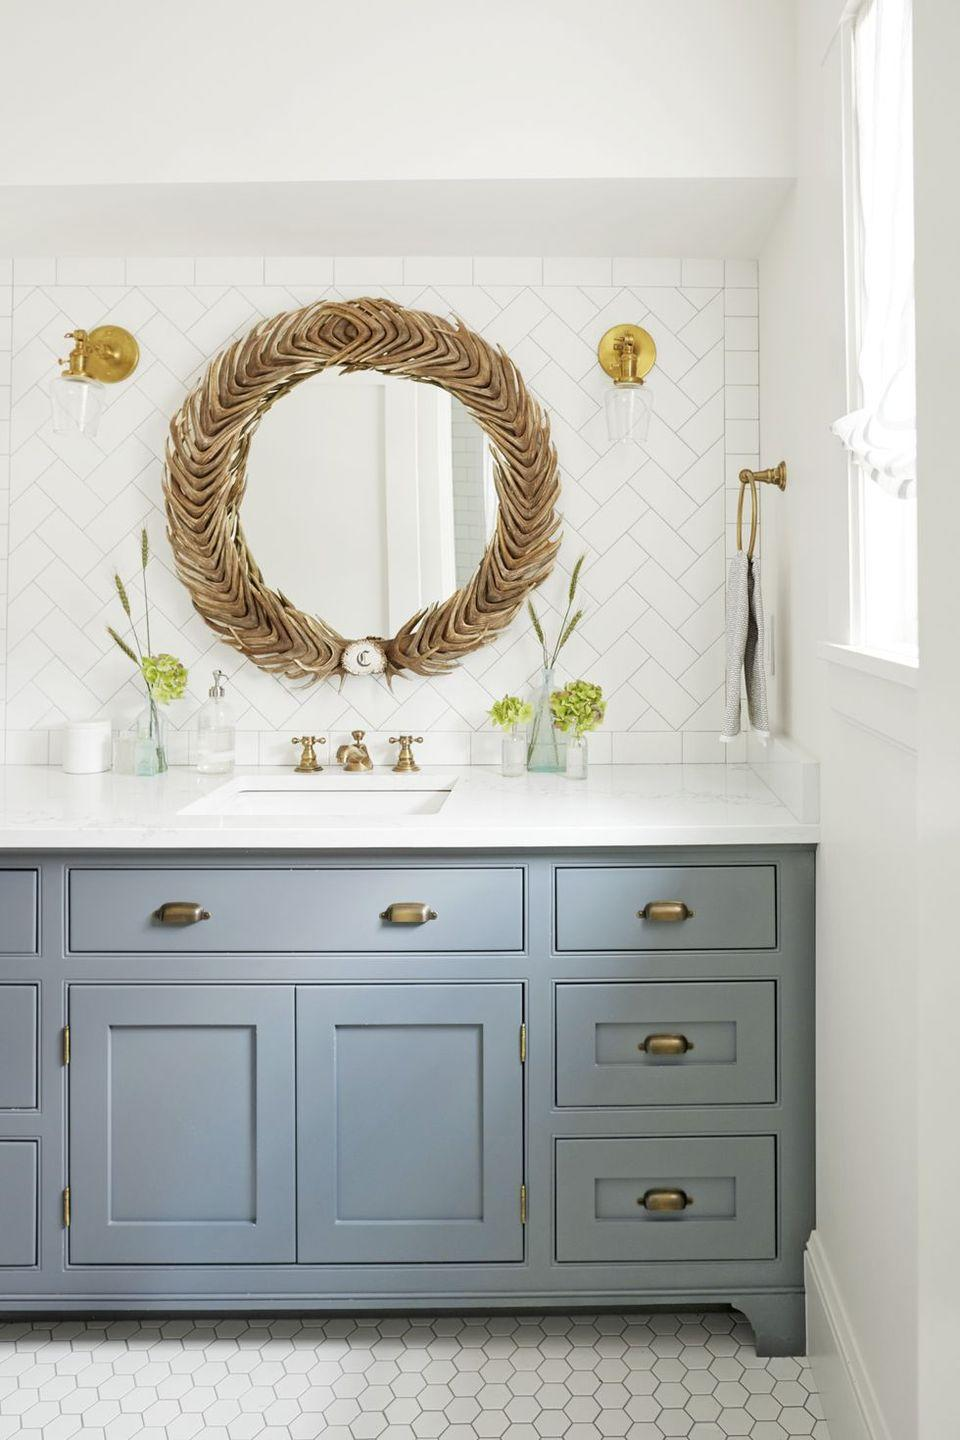 <p>Rather than opting for straight rows of mosaic tiles, have fun with it by changing the orientation. Here, a diagonal herringbone pattern adds interest to the wall. <br></p>